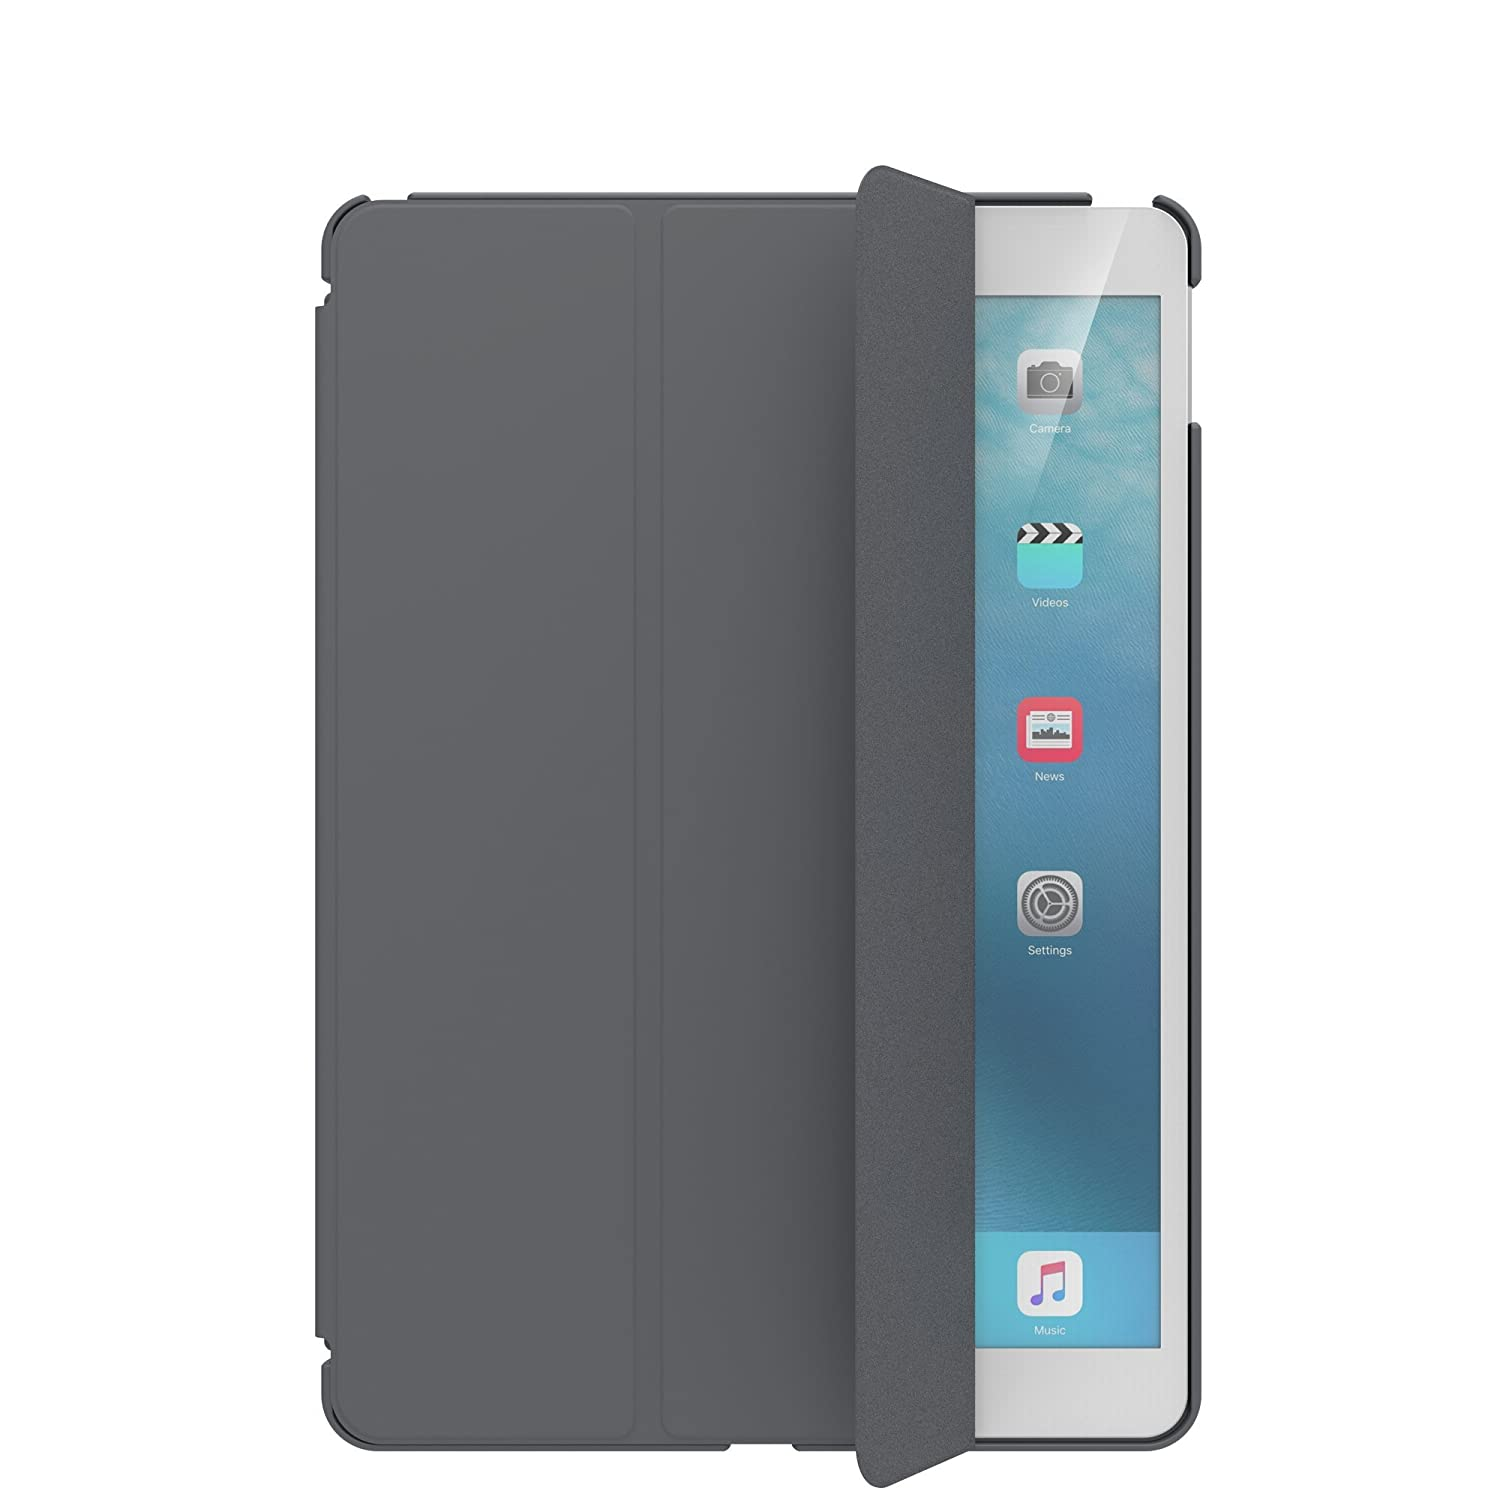 brand new c7e9a 3b0a5 SwitchEasy 2019 iPad Air 3 Case, CoverBuddy Back Cover with Pencil Holder  for iPad Air 3rd Generation and iPad Pro 10.5-inch. Compatible with Smart  ...